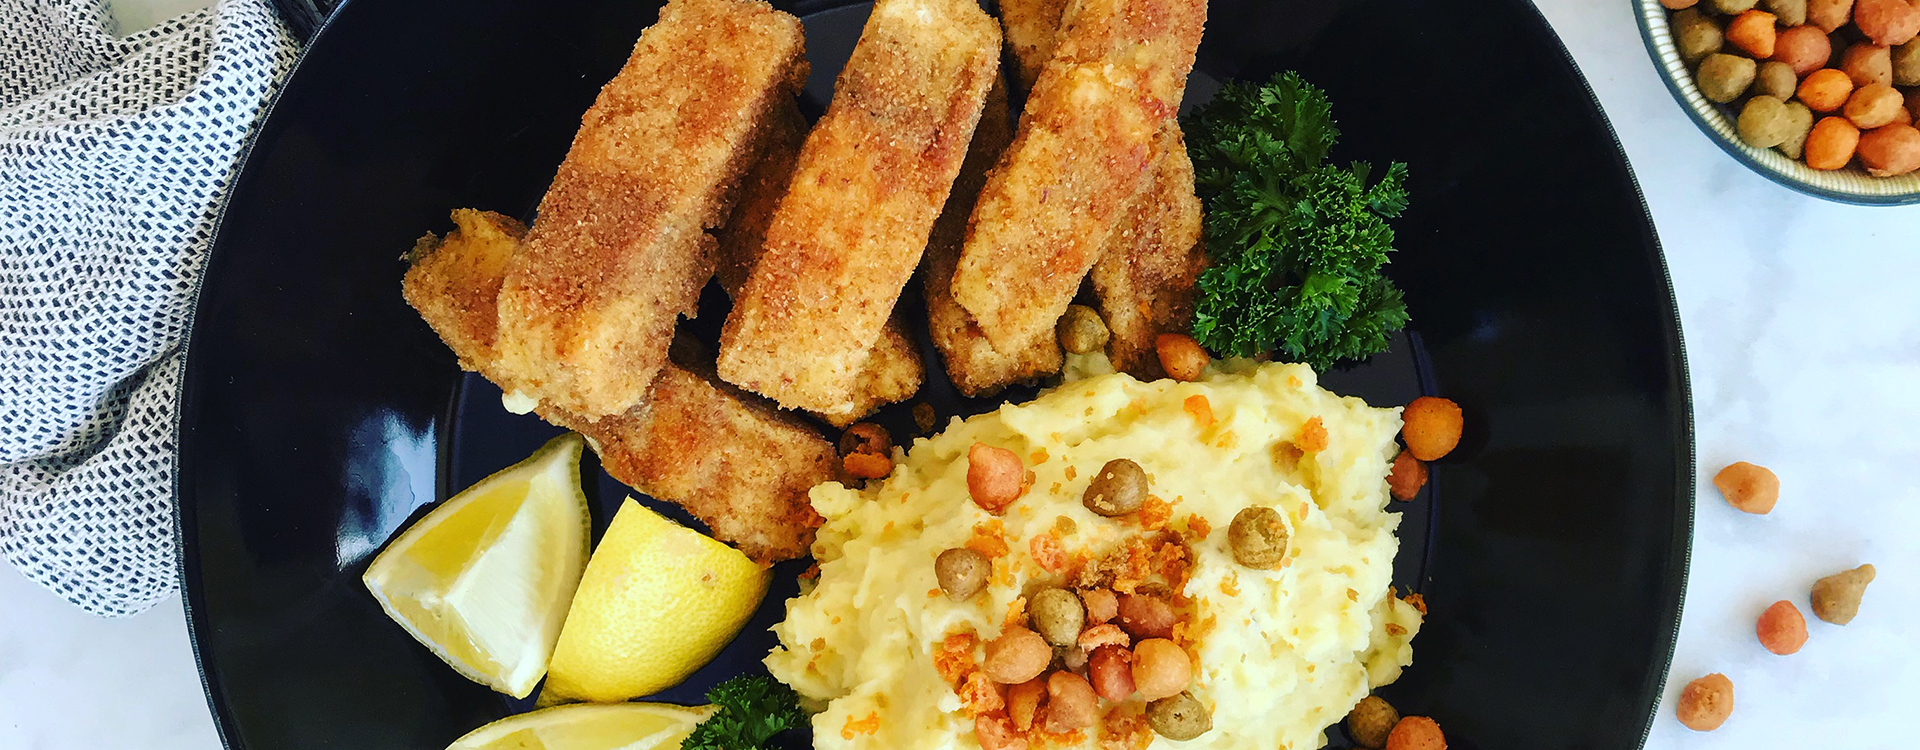 Fish fingers with crunchy potato purée